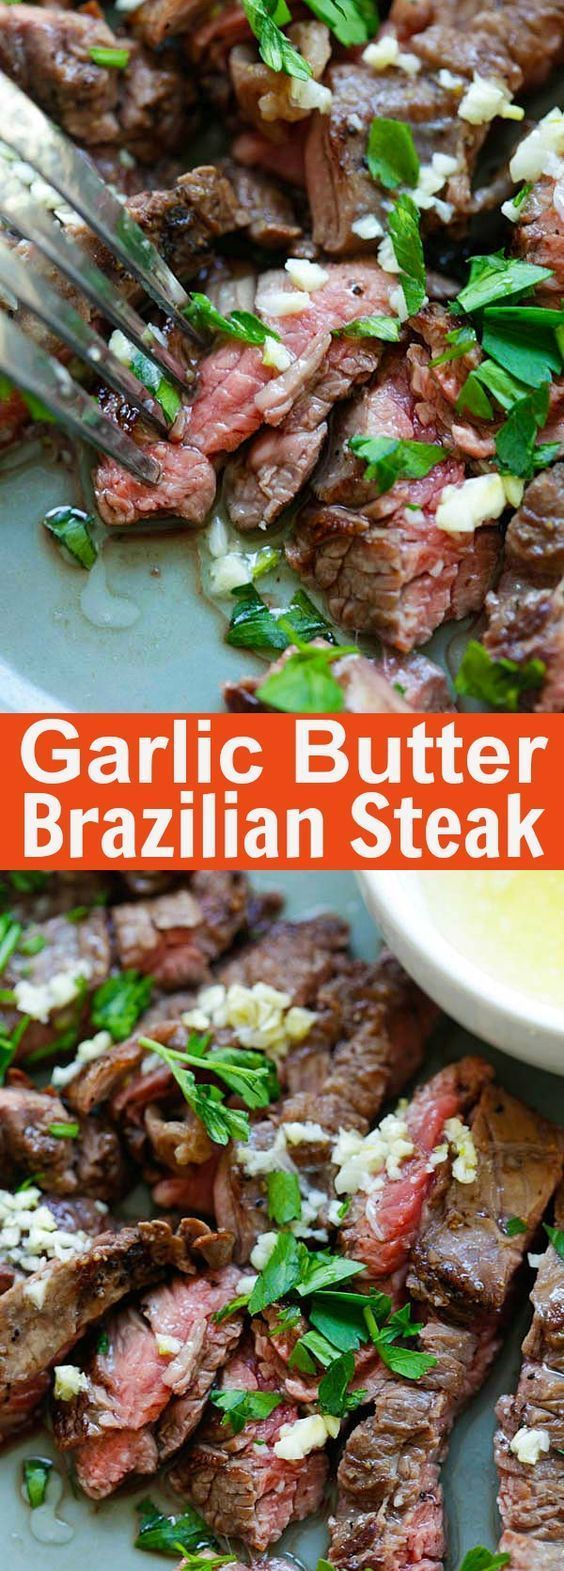 Garlic Butter Brazilian Steak – the juiciest and most tender steak with a golden garlic butter sauce. Takes 15 minutes and dinner is ready